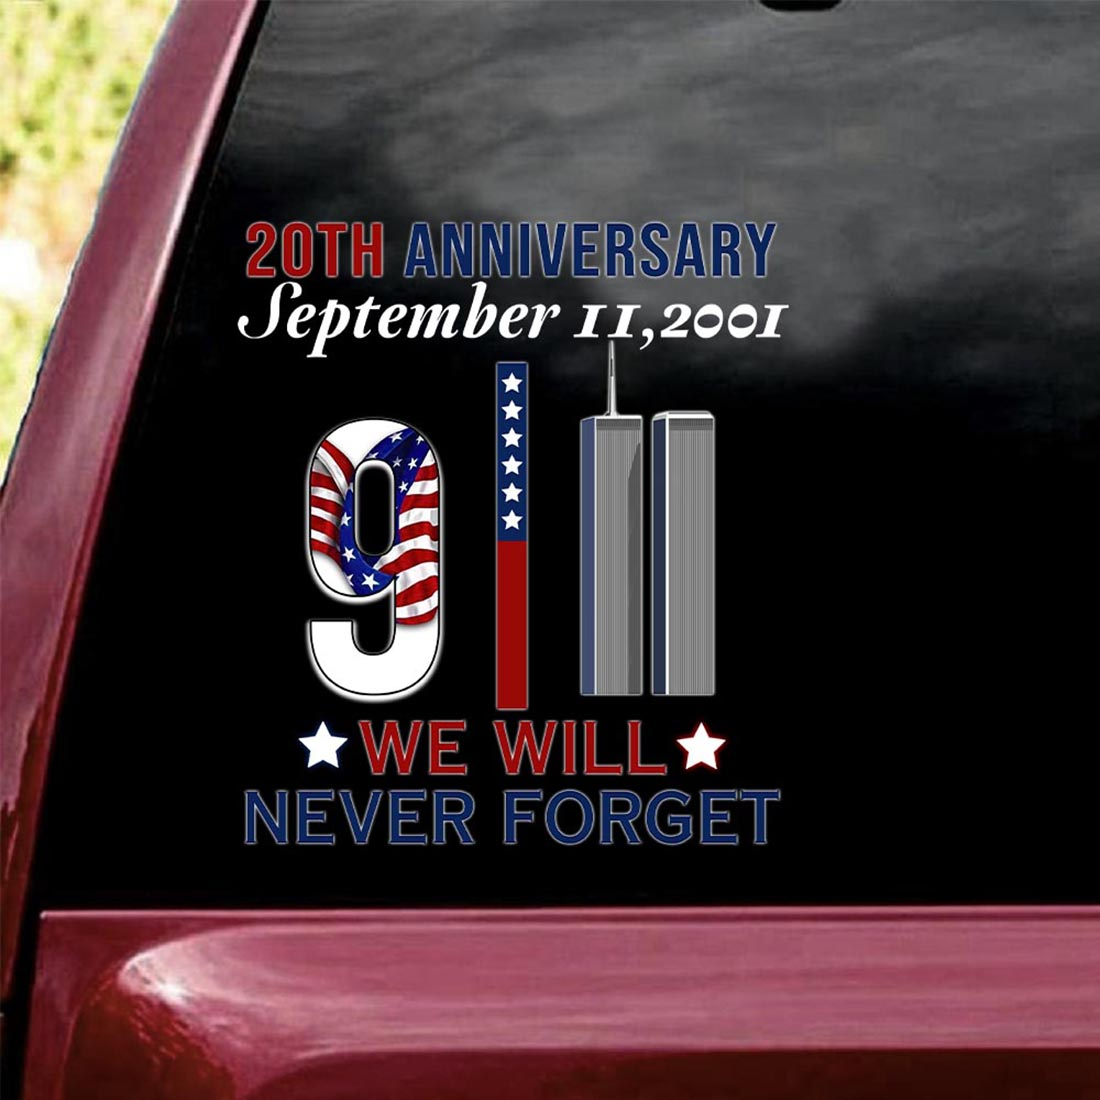 20th anniversary September 11 2001 we will never forget sticker decal